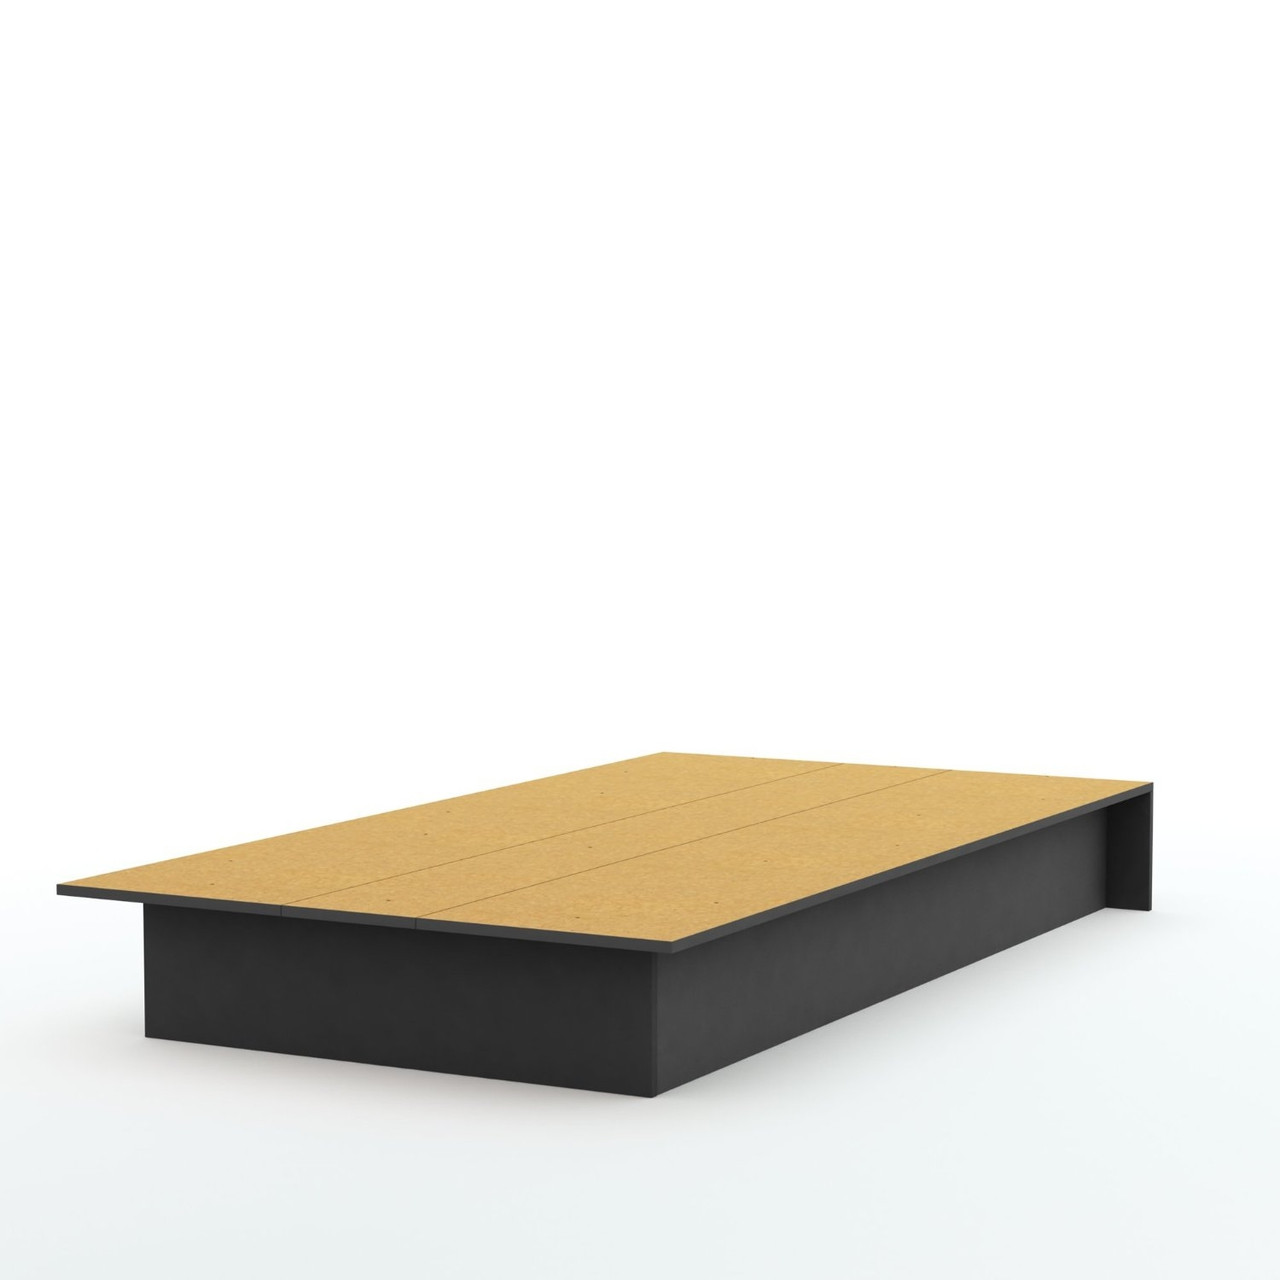 Twin platform bed frame in black wood finish for Black wood bed frame